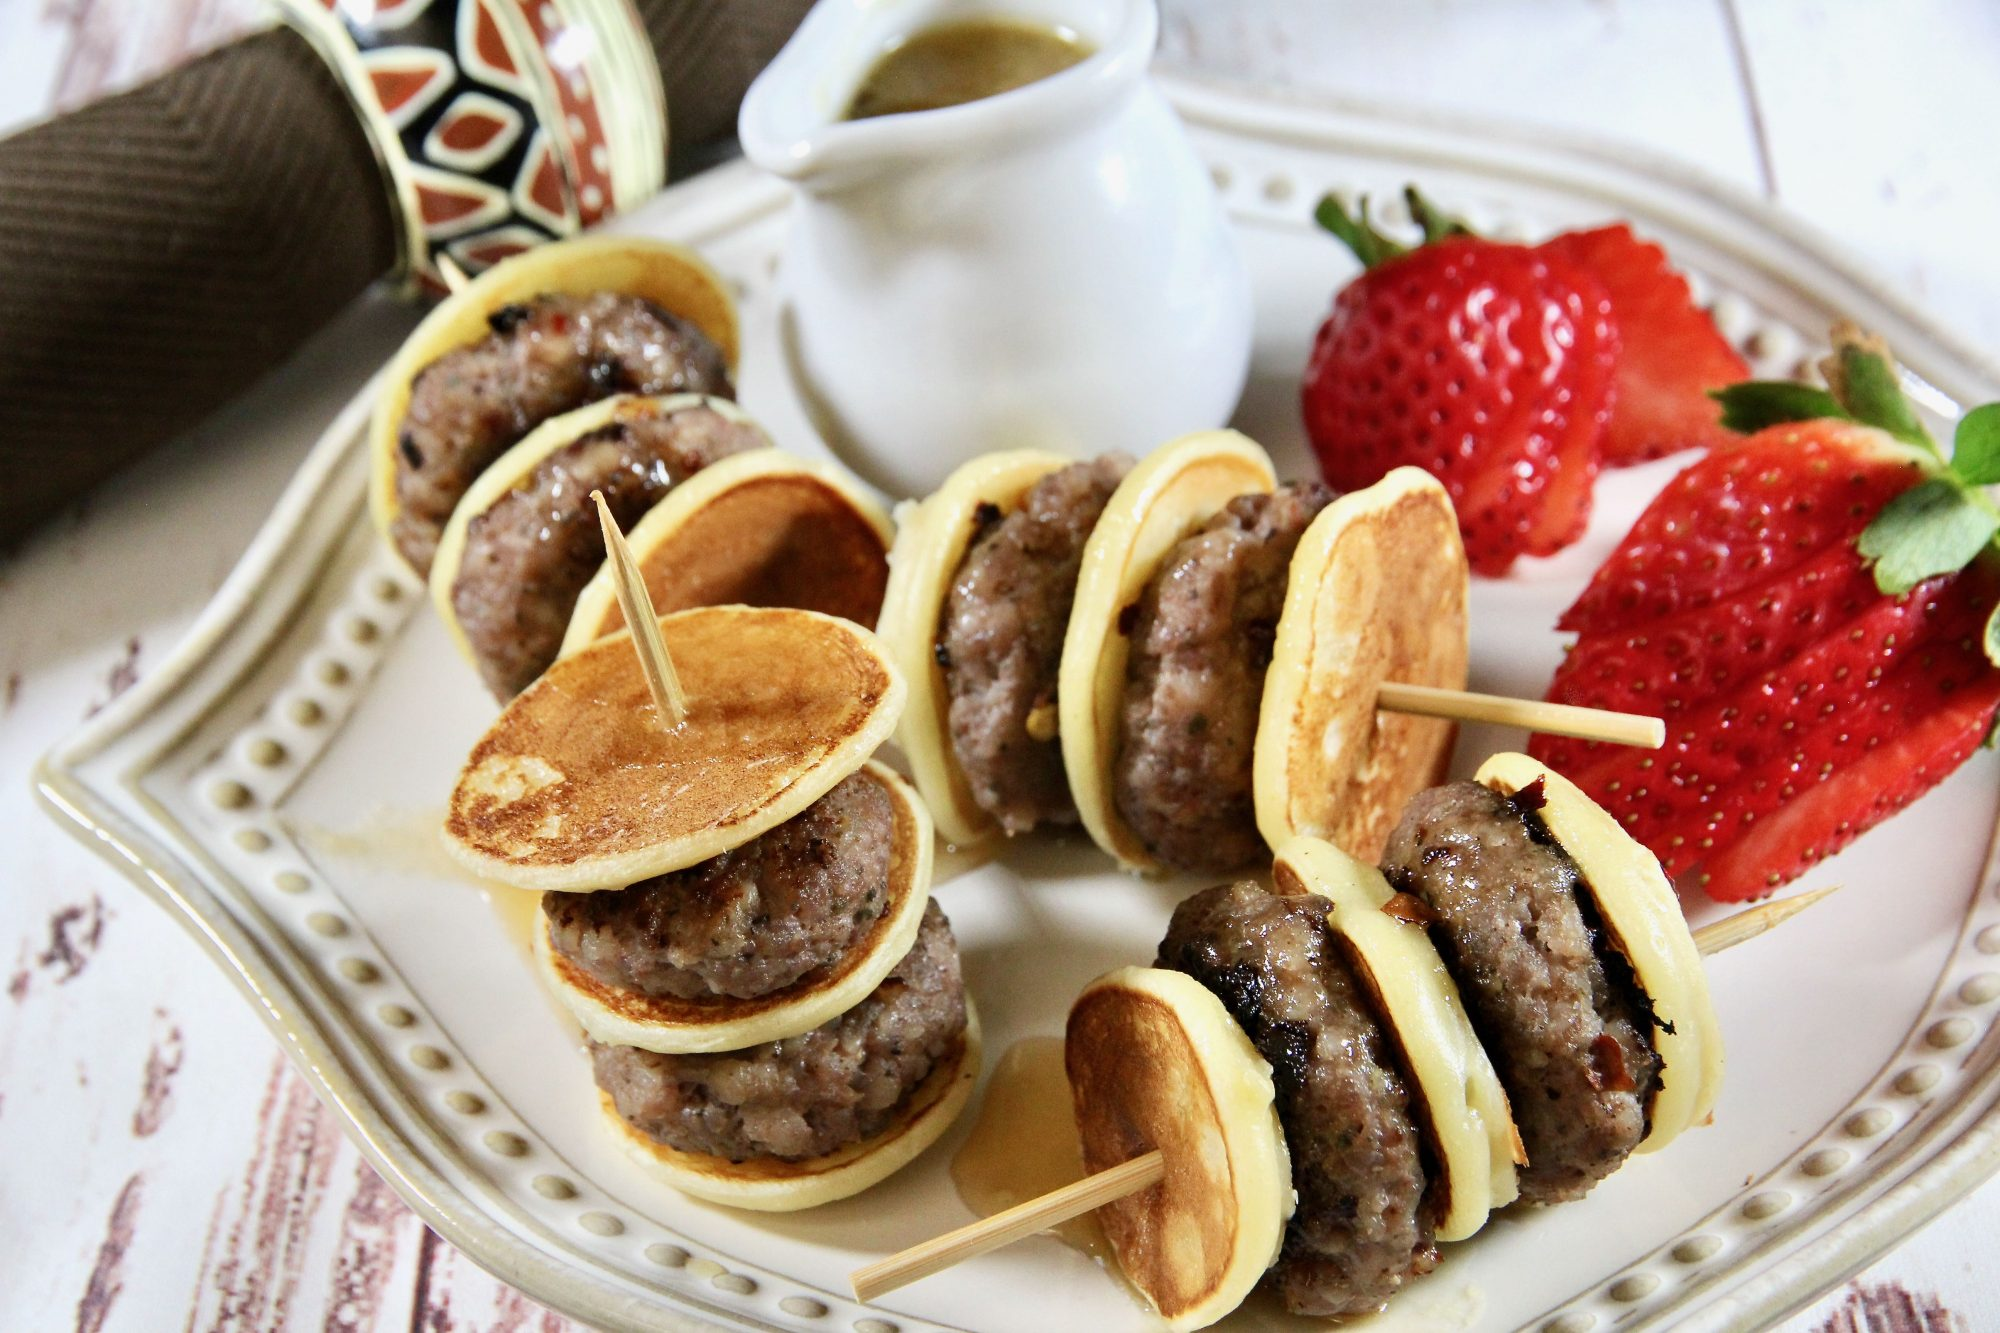 mini pancakes threaded onto skewers with mini sausage patties and served with fruit and syrup